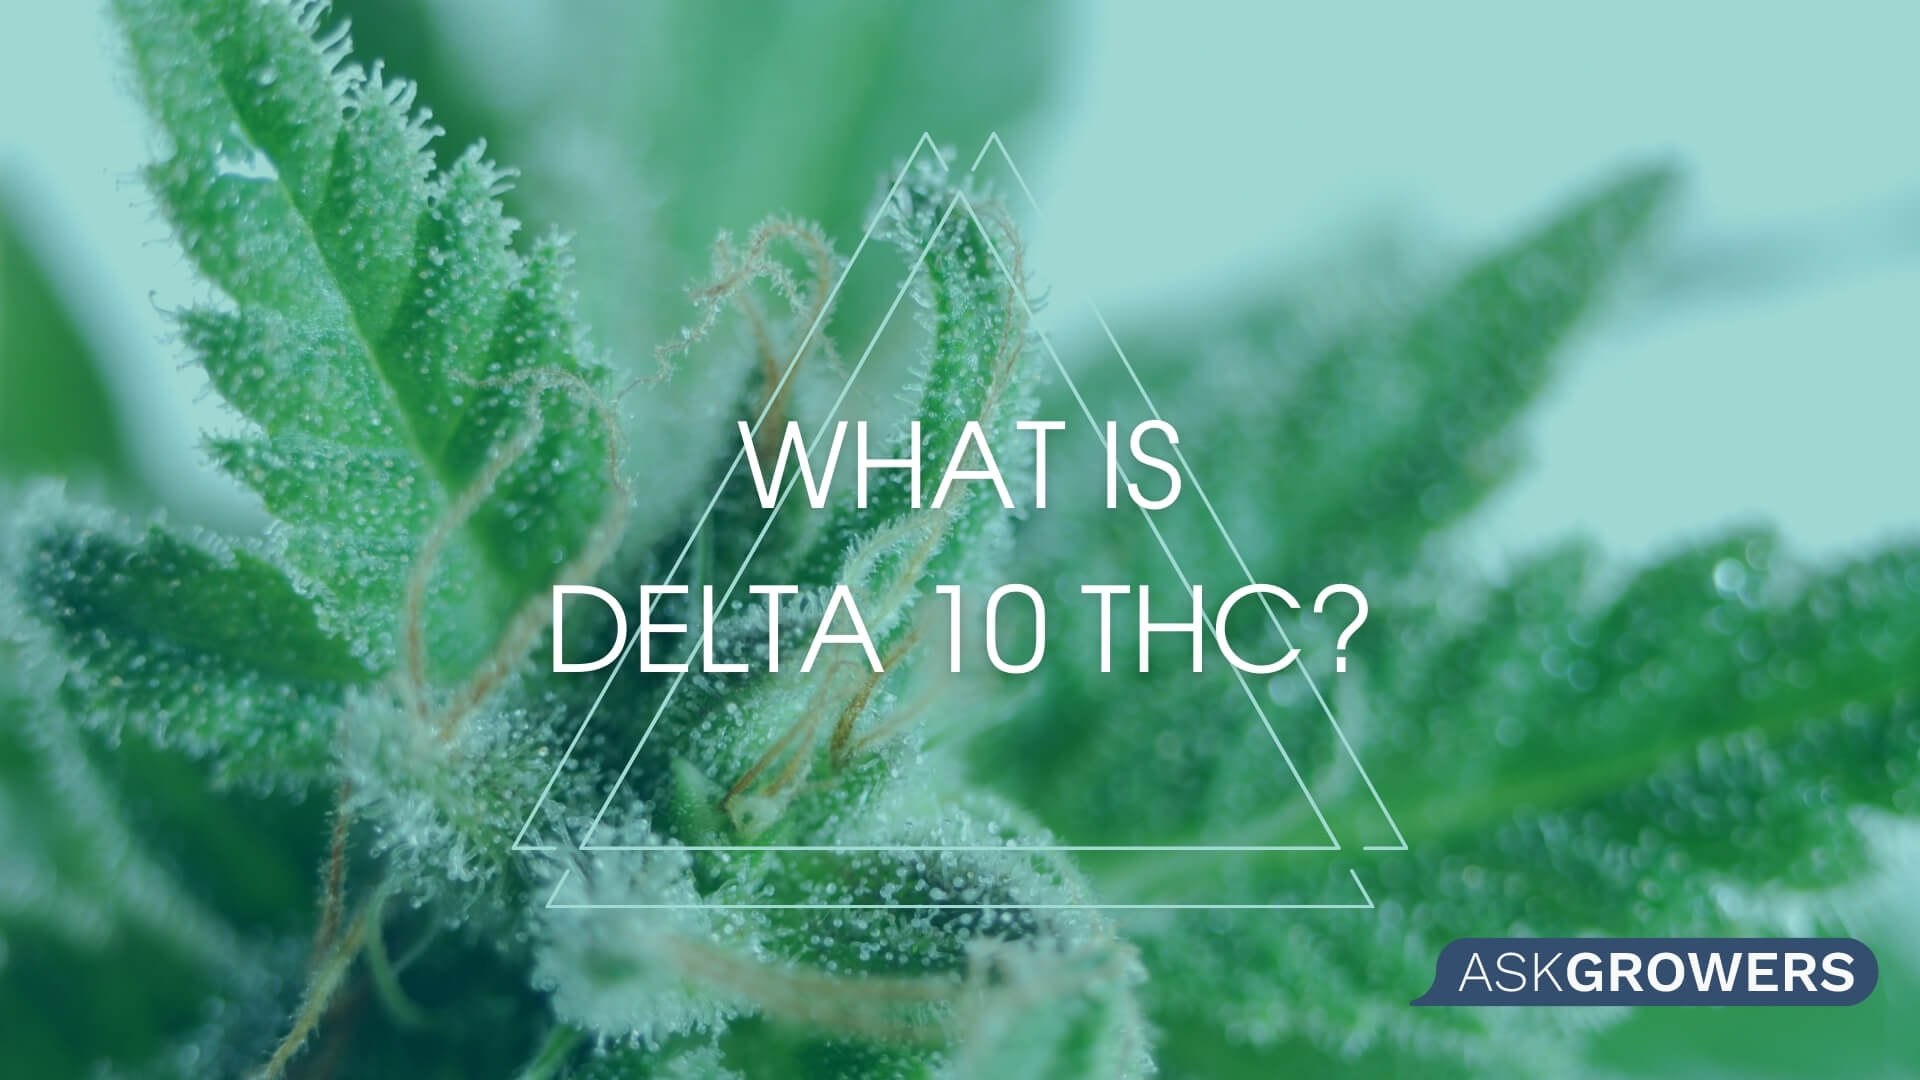 What You Need to Know About the New Tetrahydrocannabinol Delta-10, AskGrowers